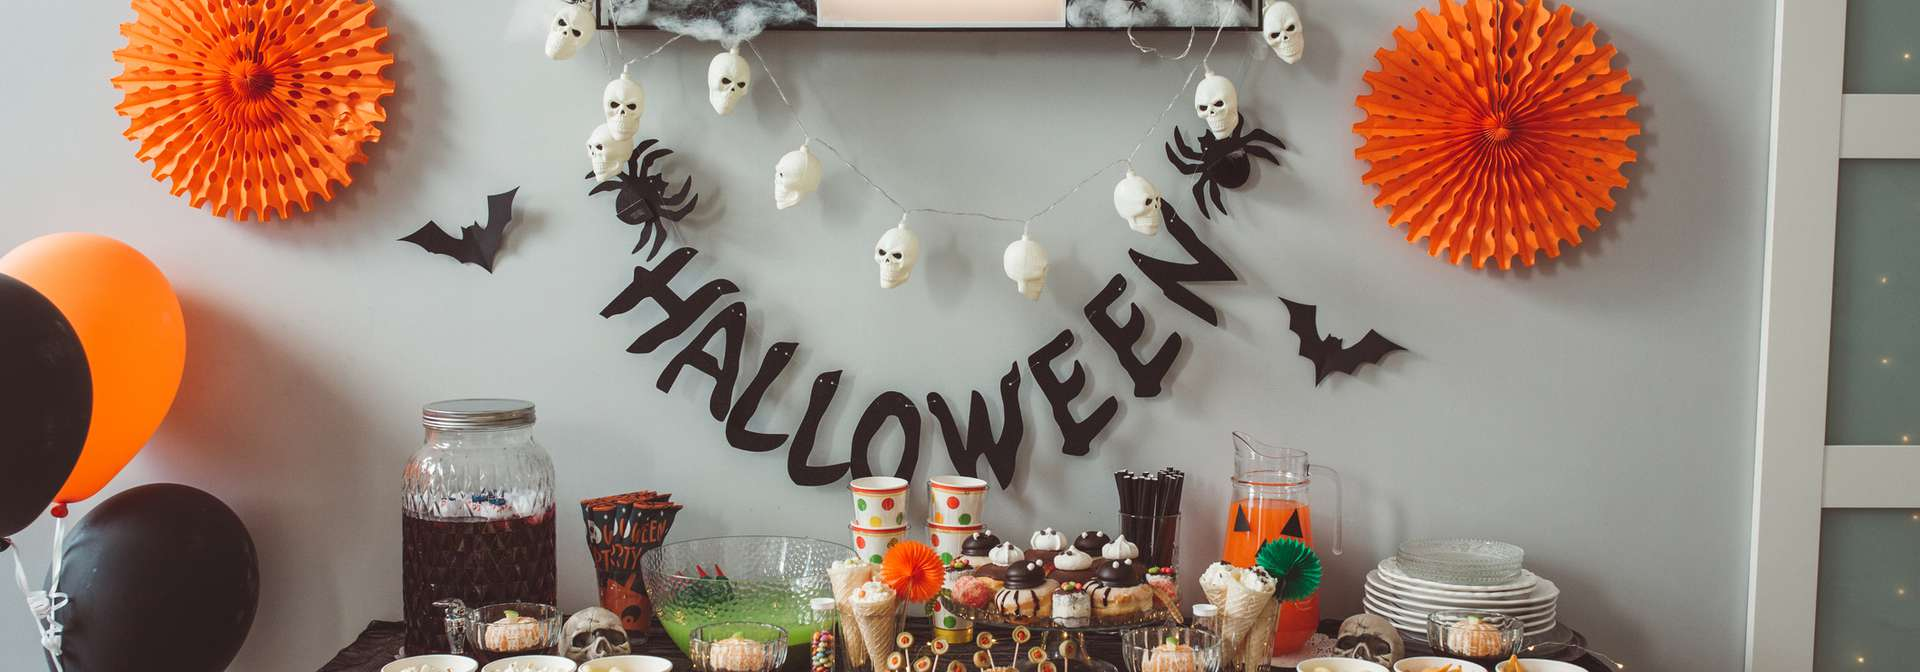 A Halloween themed party with food table and decorations